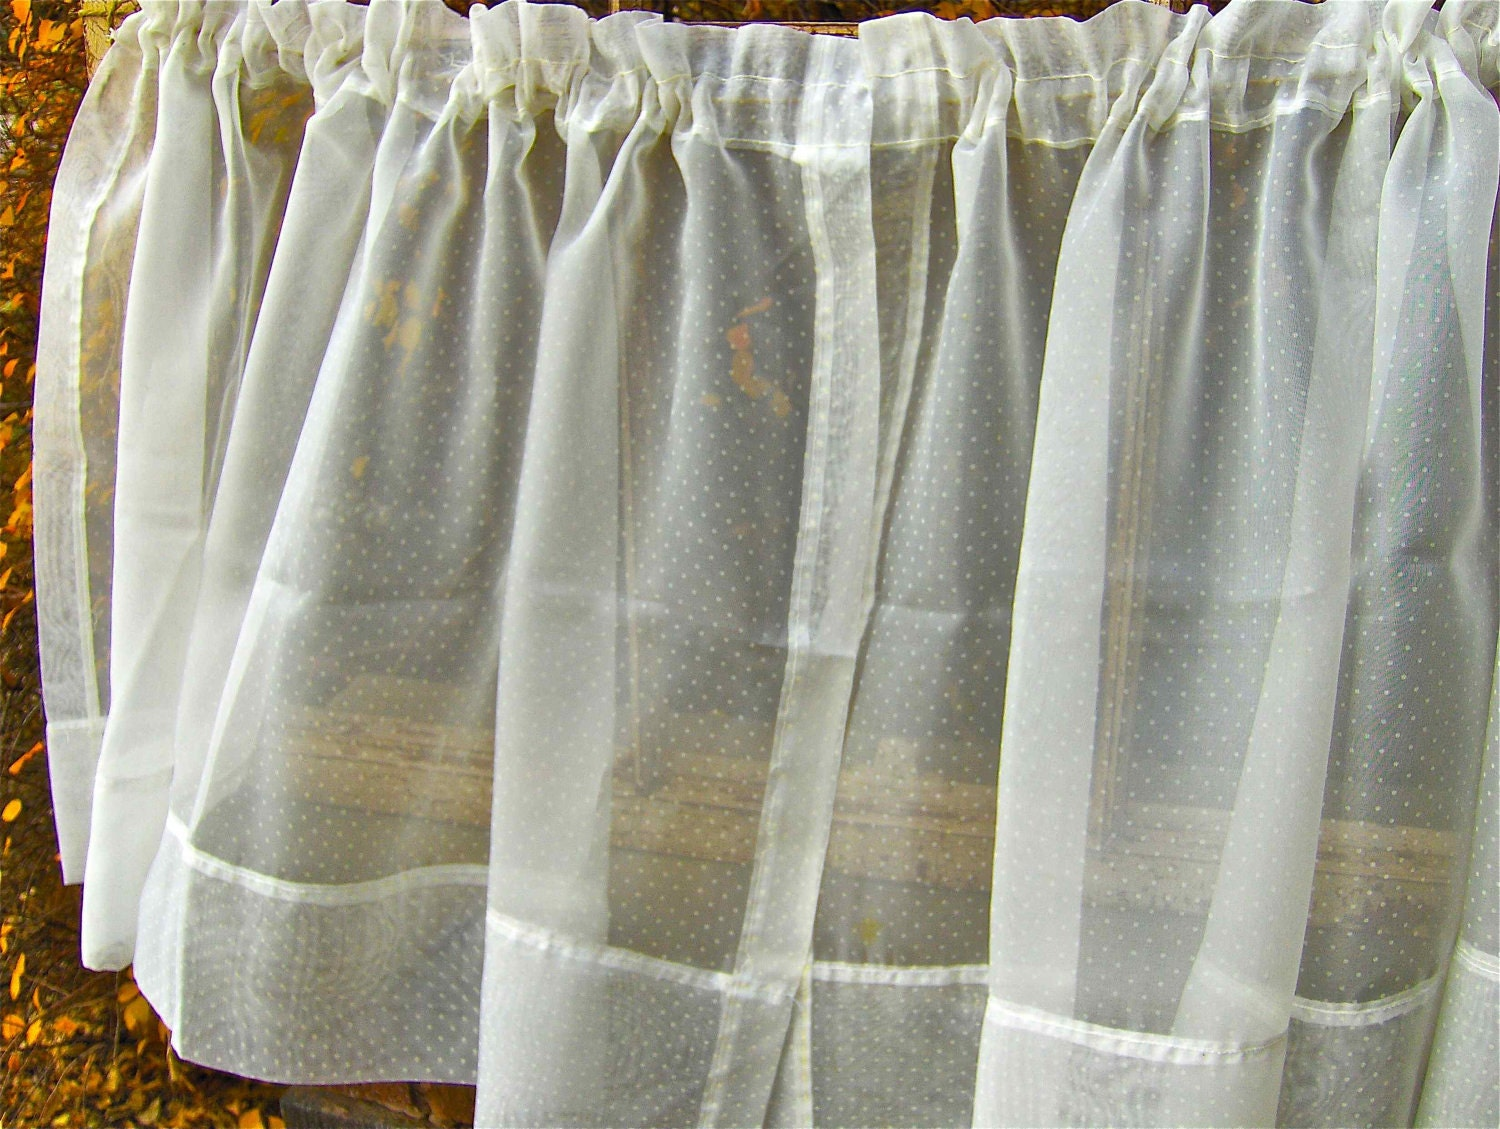 Outdoor Waterproof Curtains Patio White Patterned Sheer Curtains